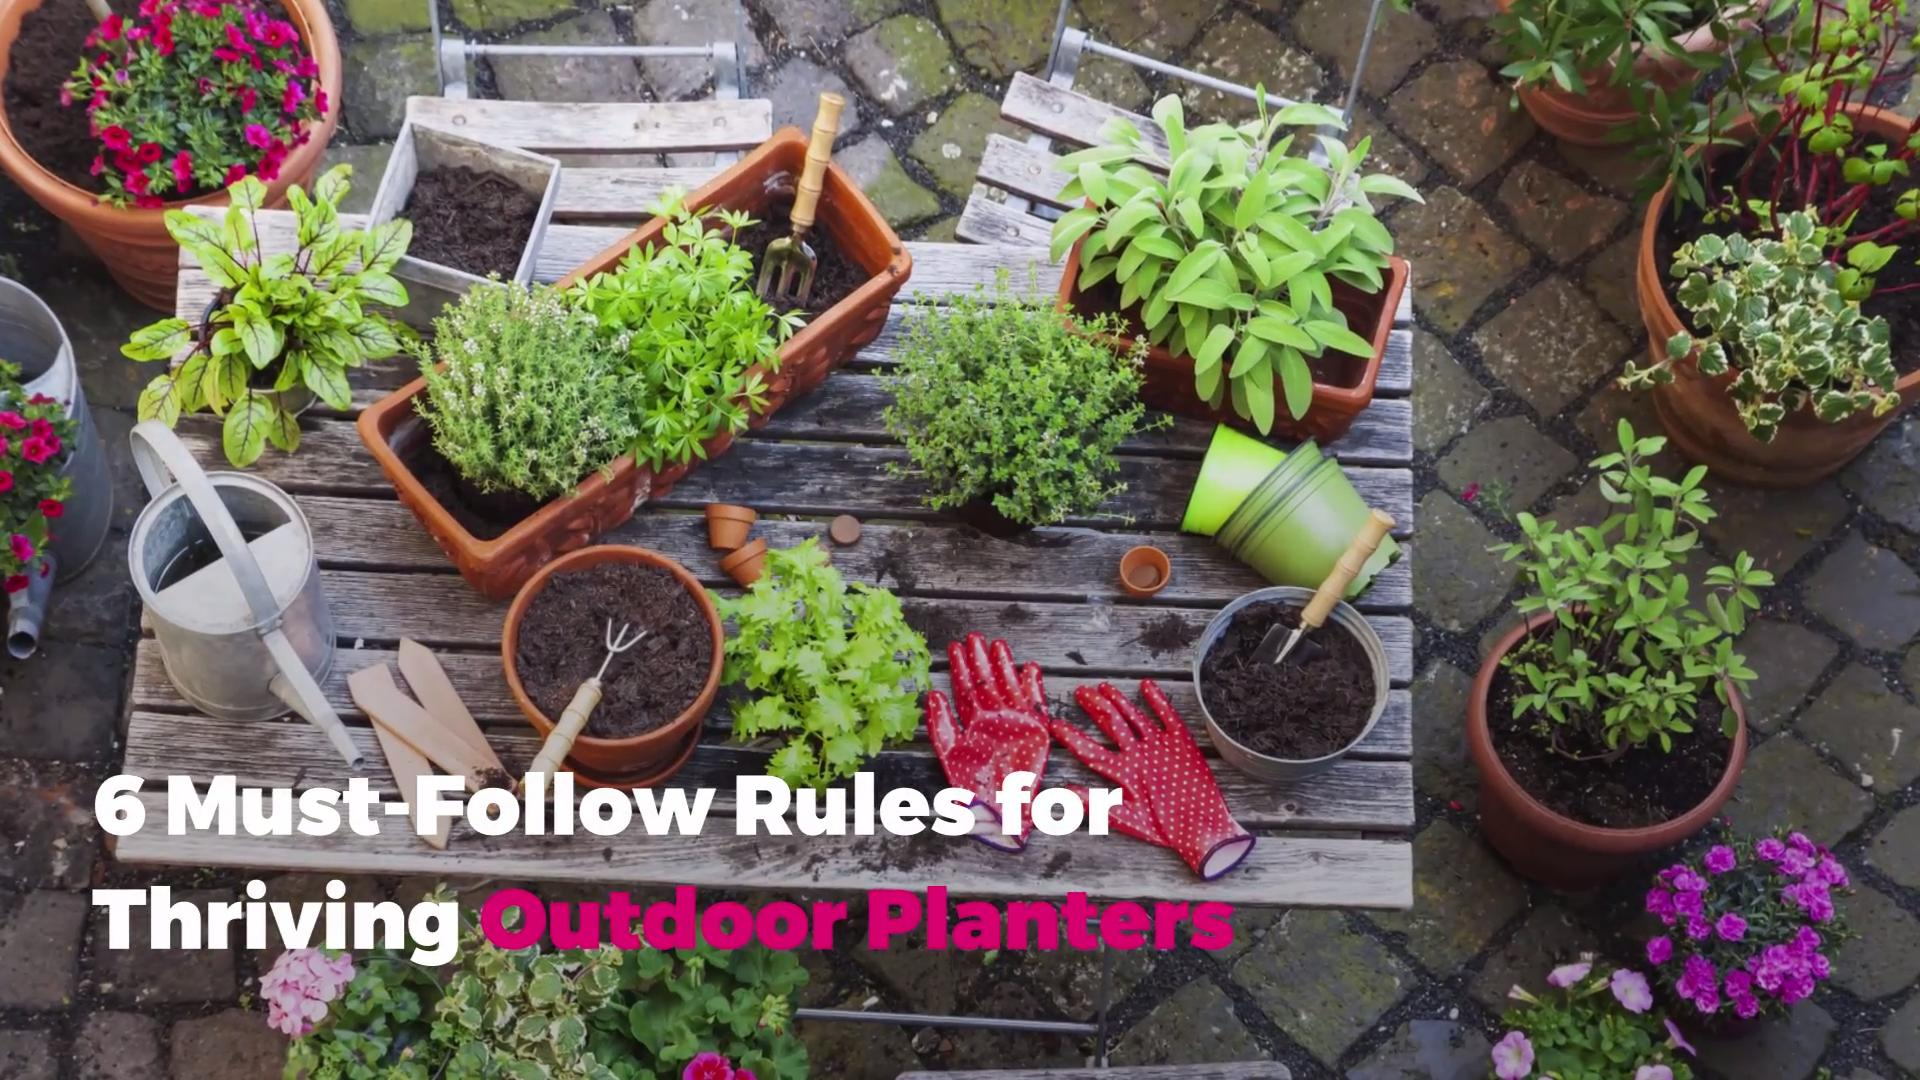 6 Must-Follow Rules for Thriving Outdoor Planters